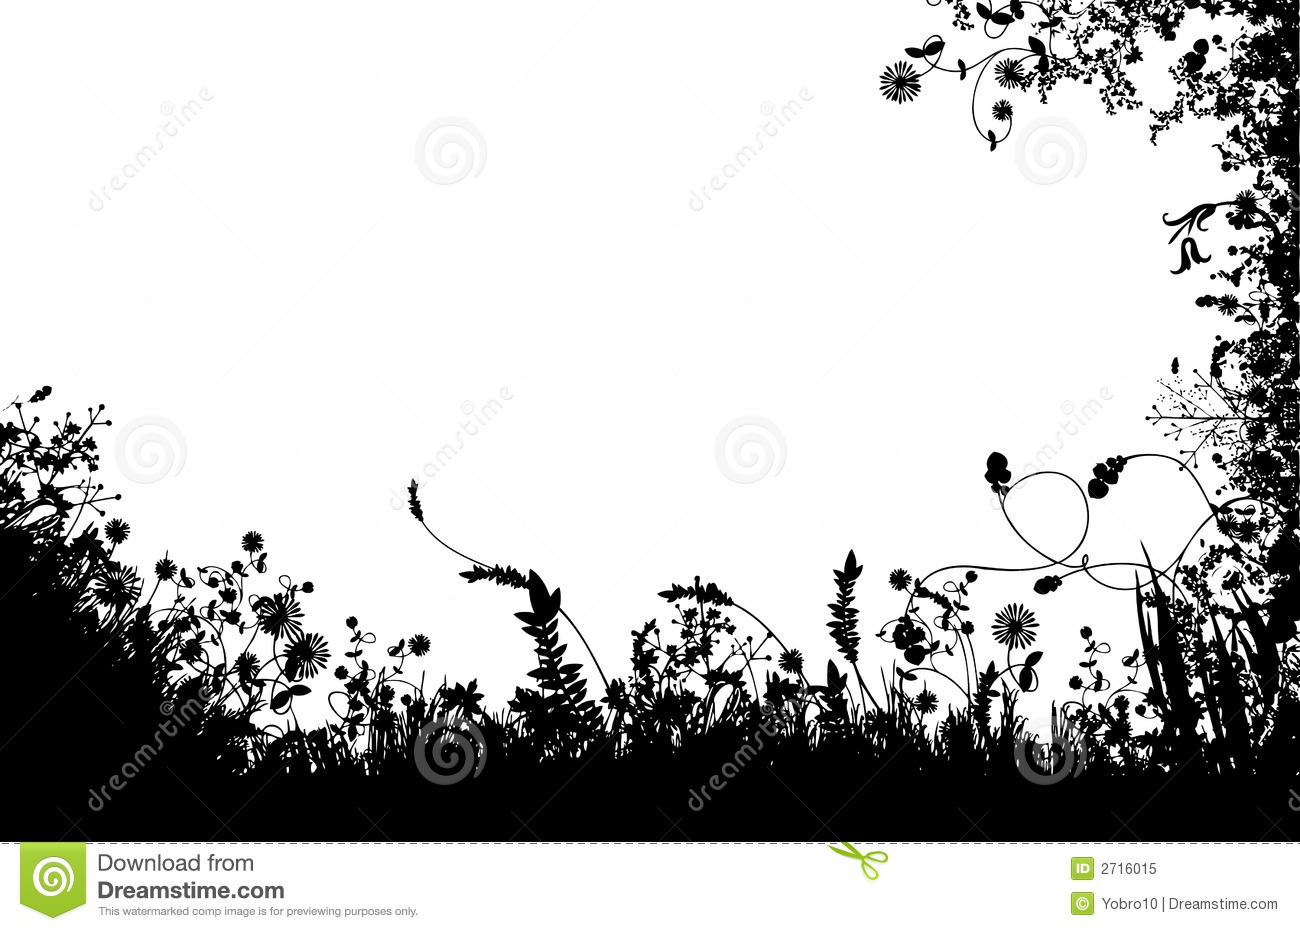 Floral Fields Silhouette Royalty Free Stock Photo Image